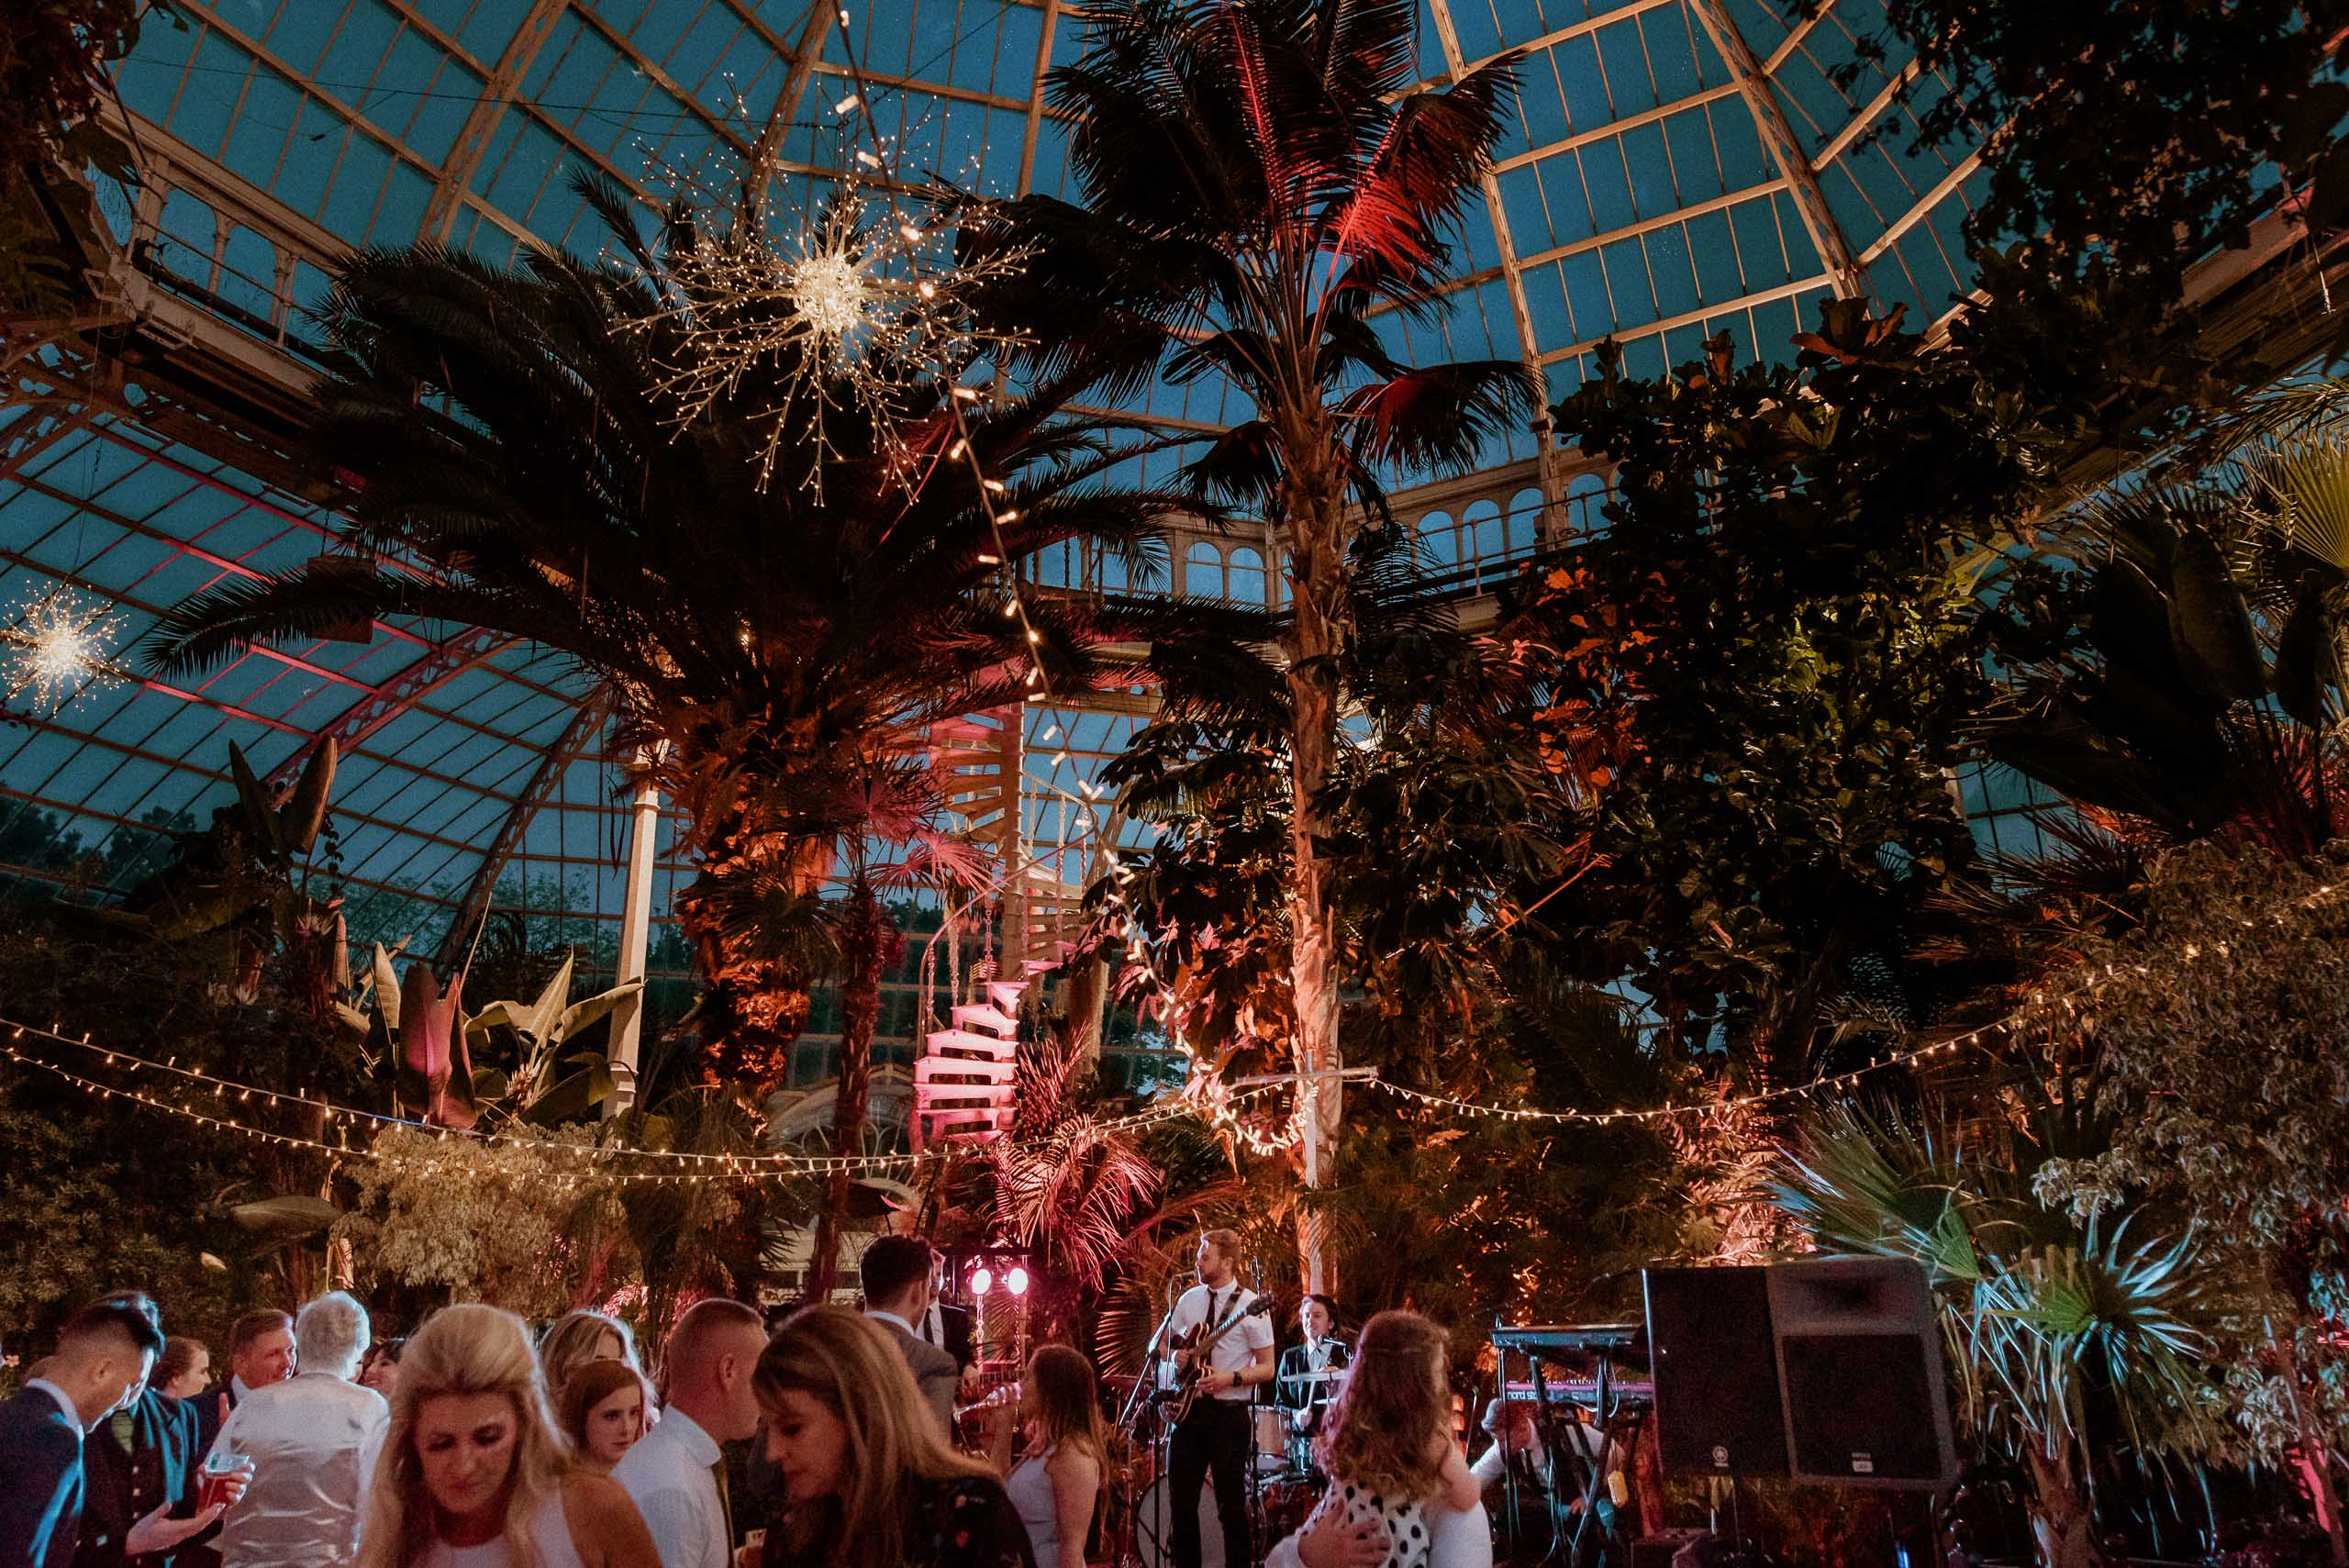 night time lighting inside the palm house as band plays on stage